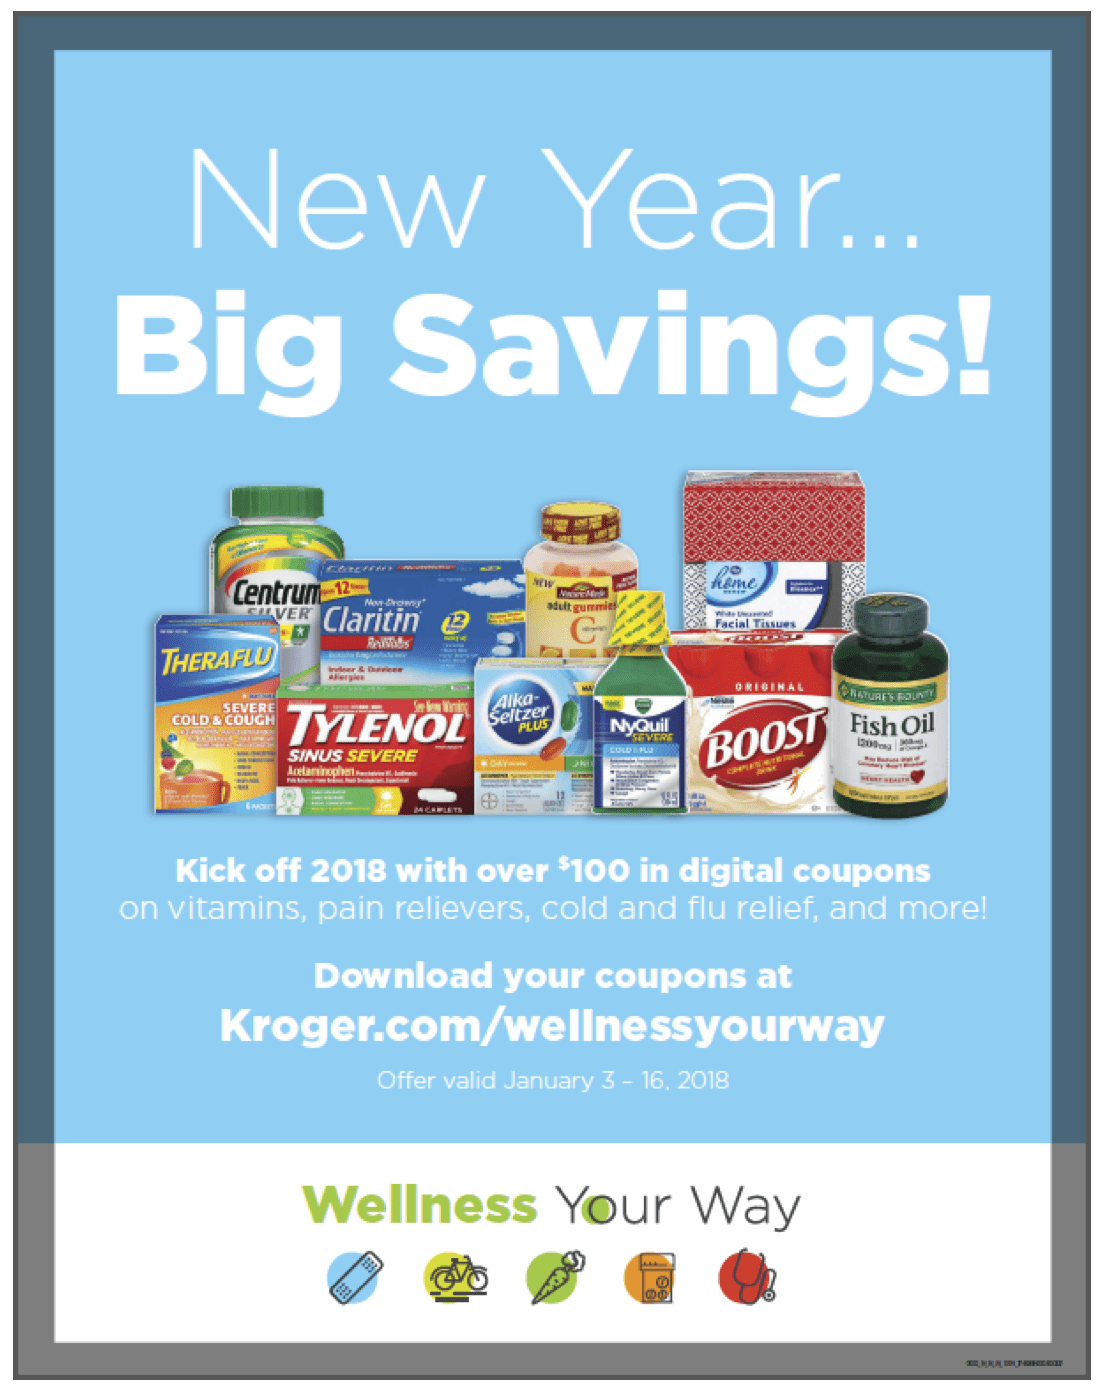 Kroger wellness your way